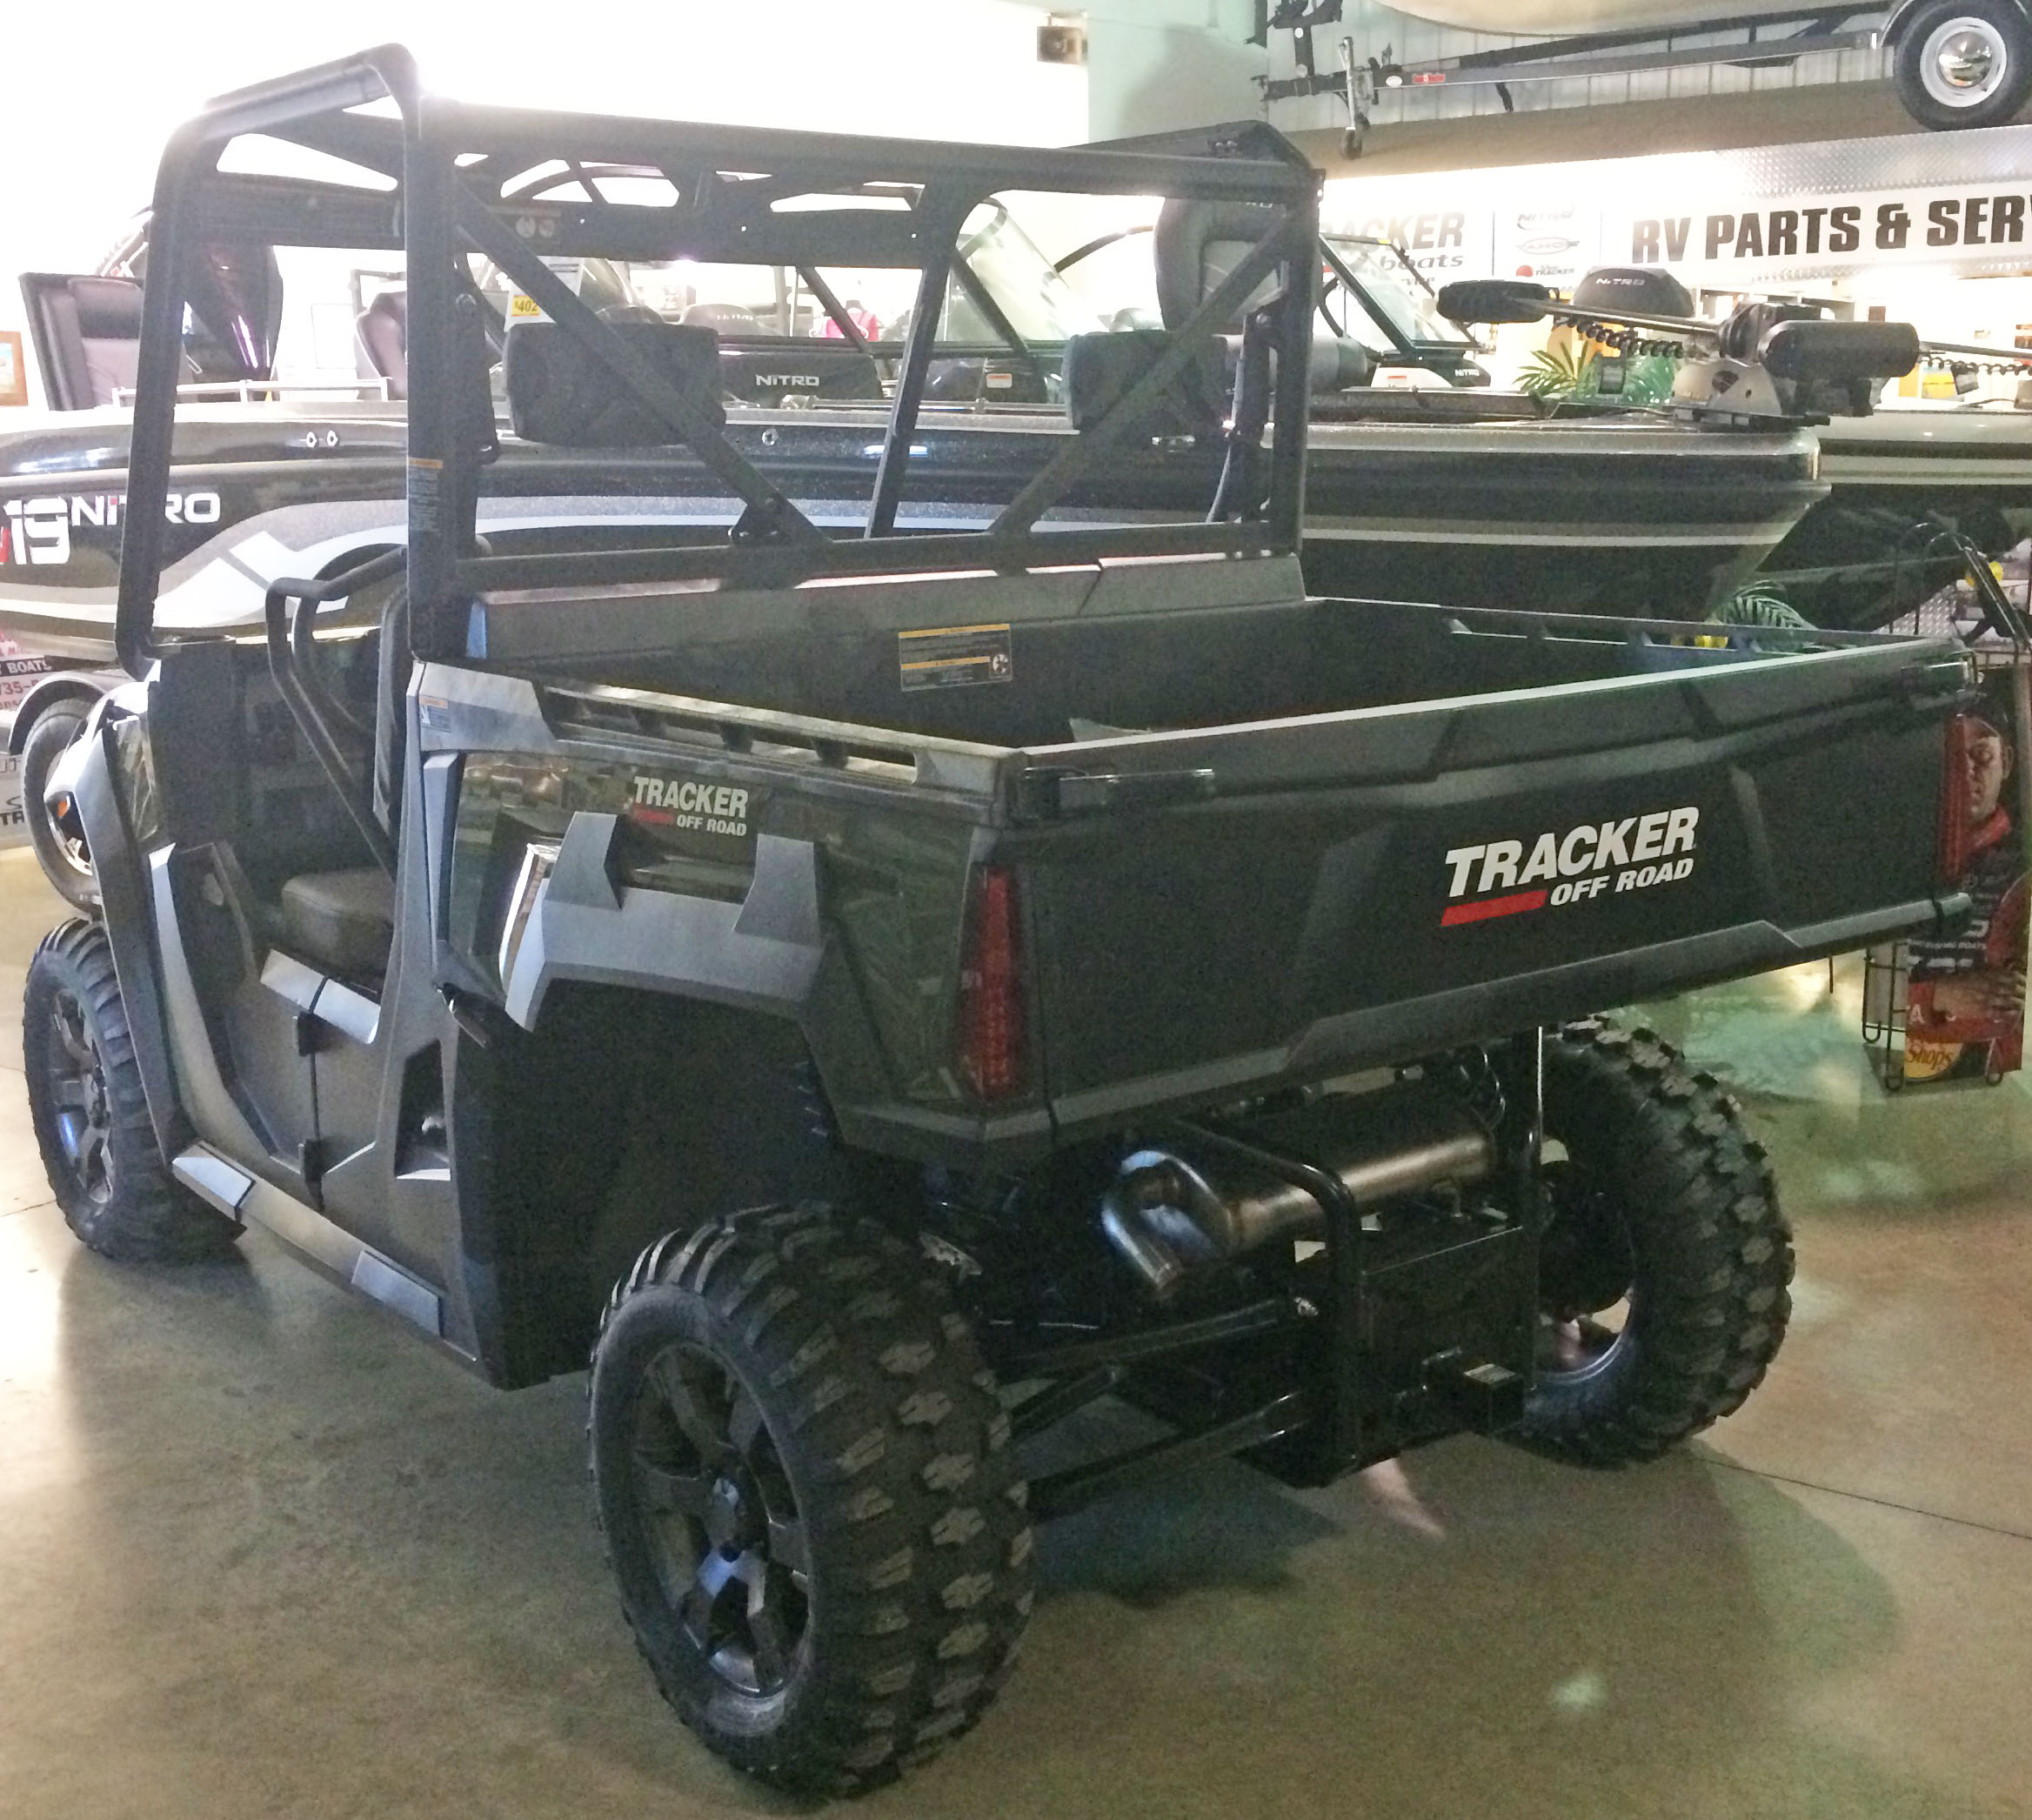 20ss430 2020 Tracker Off Road 800sx Price 11 499 Minot